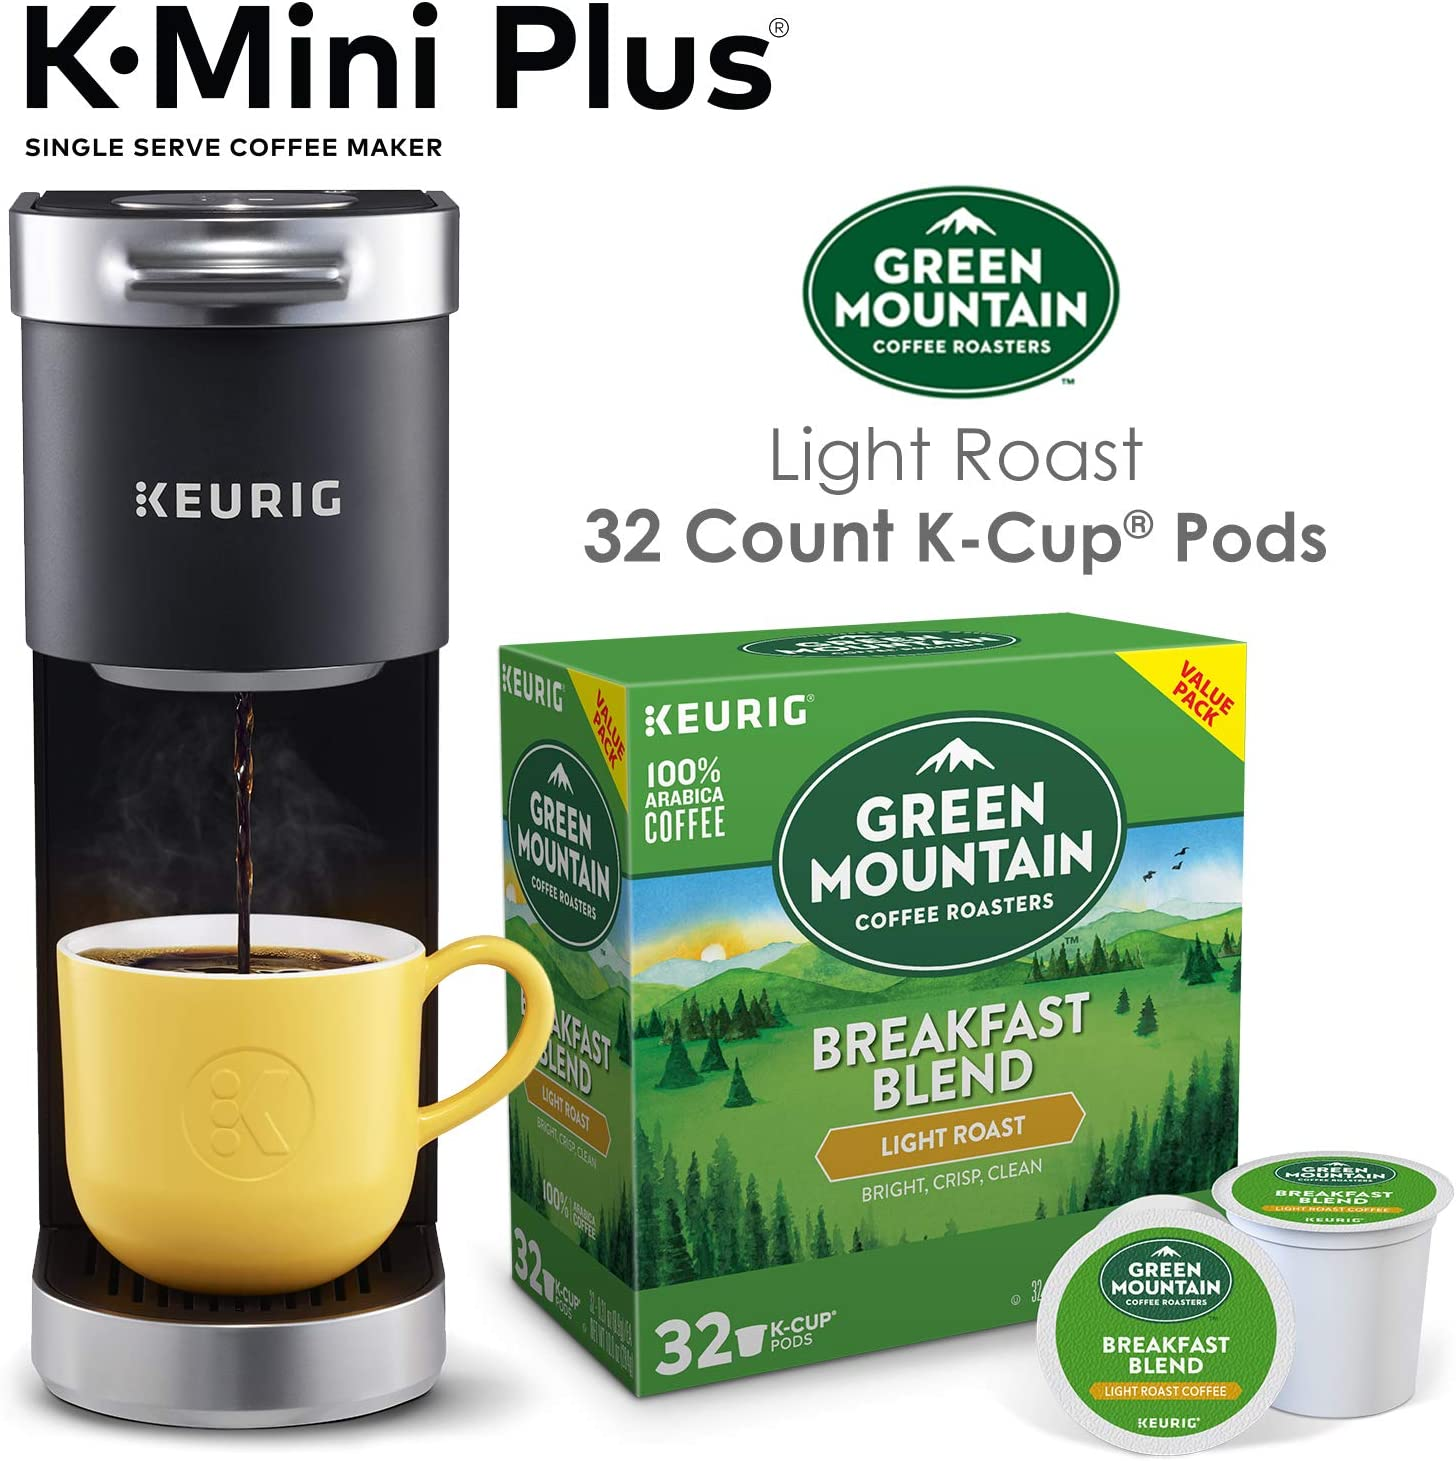 Keurig K-Mini Plus Single Serve Coffee Maker with Green Mountain Breakfast Blend Coffee Pods, 32 count